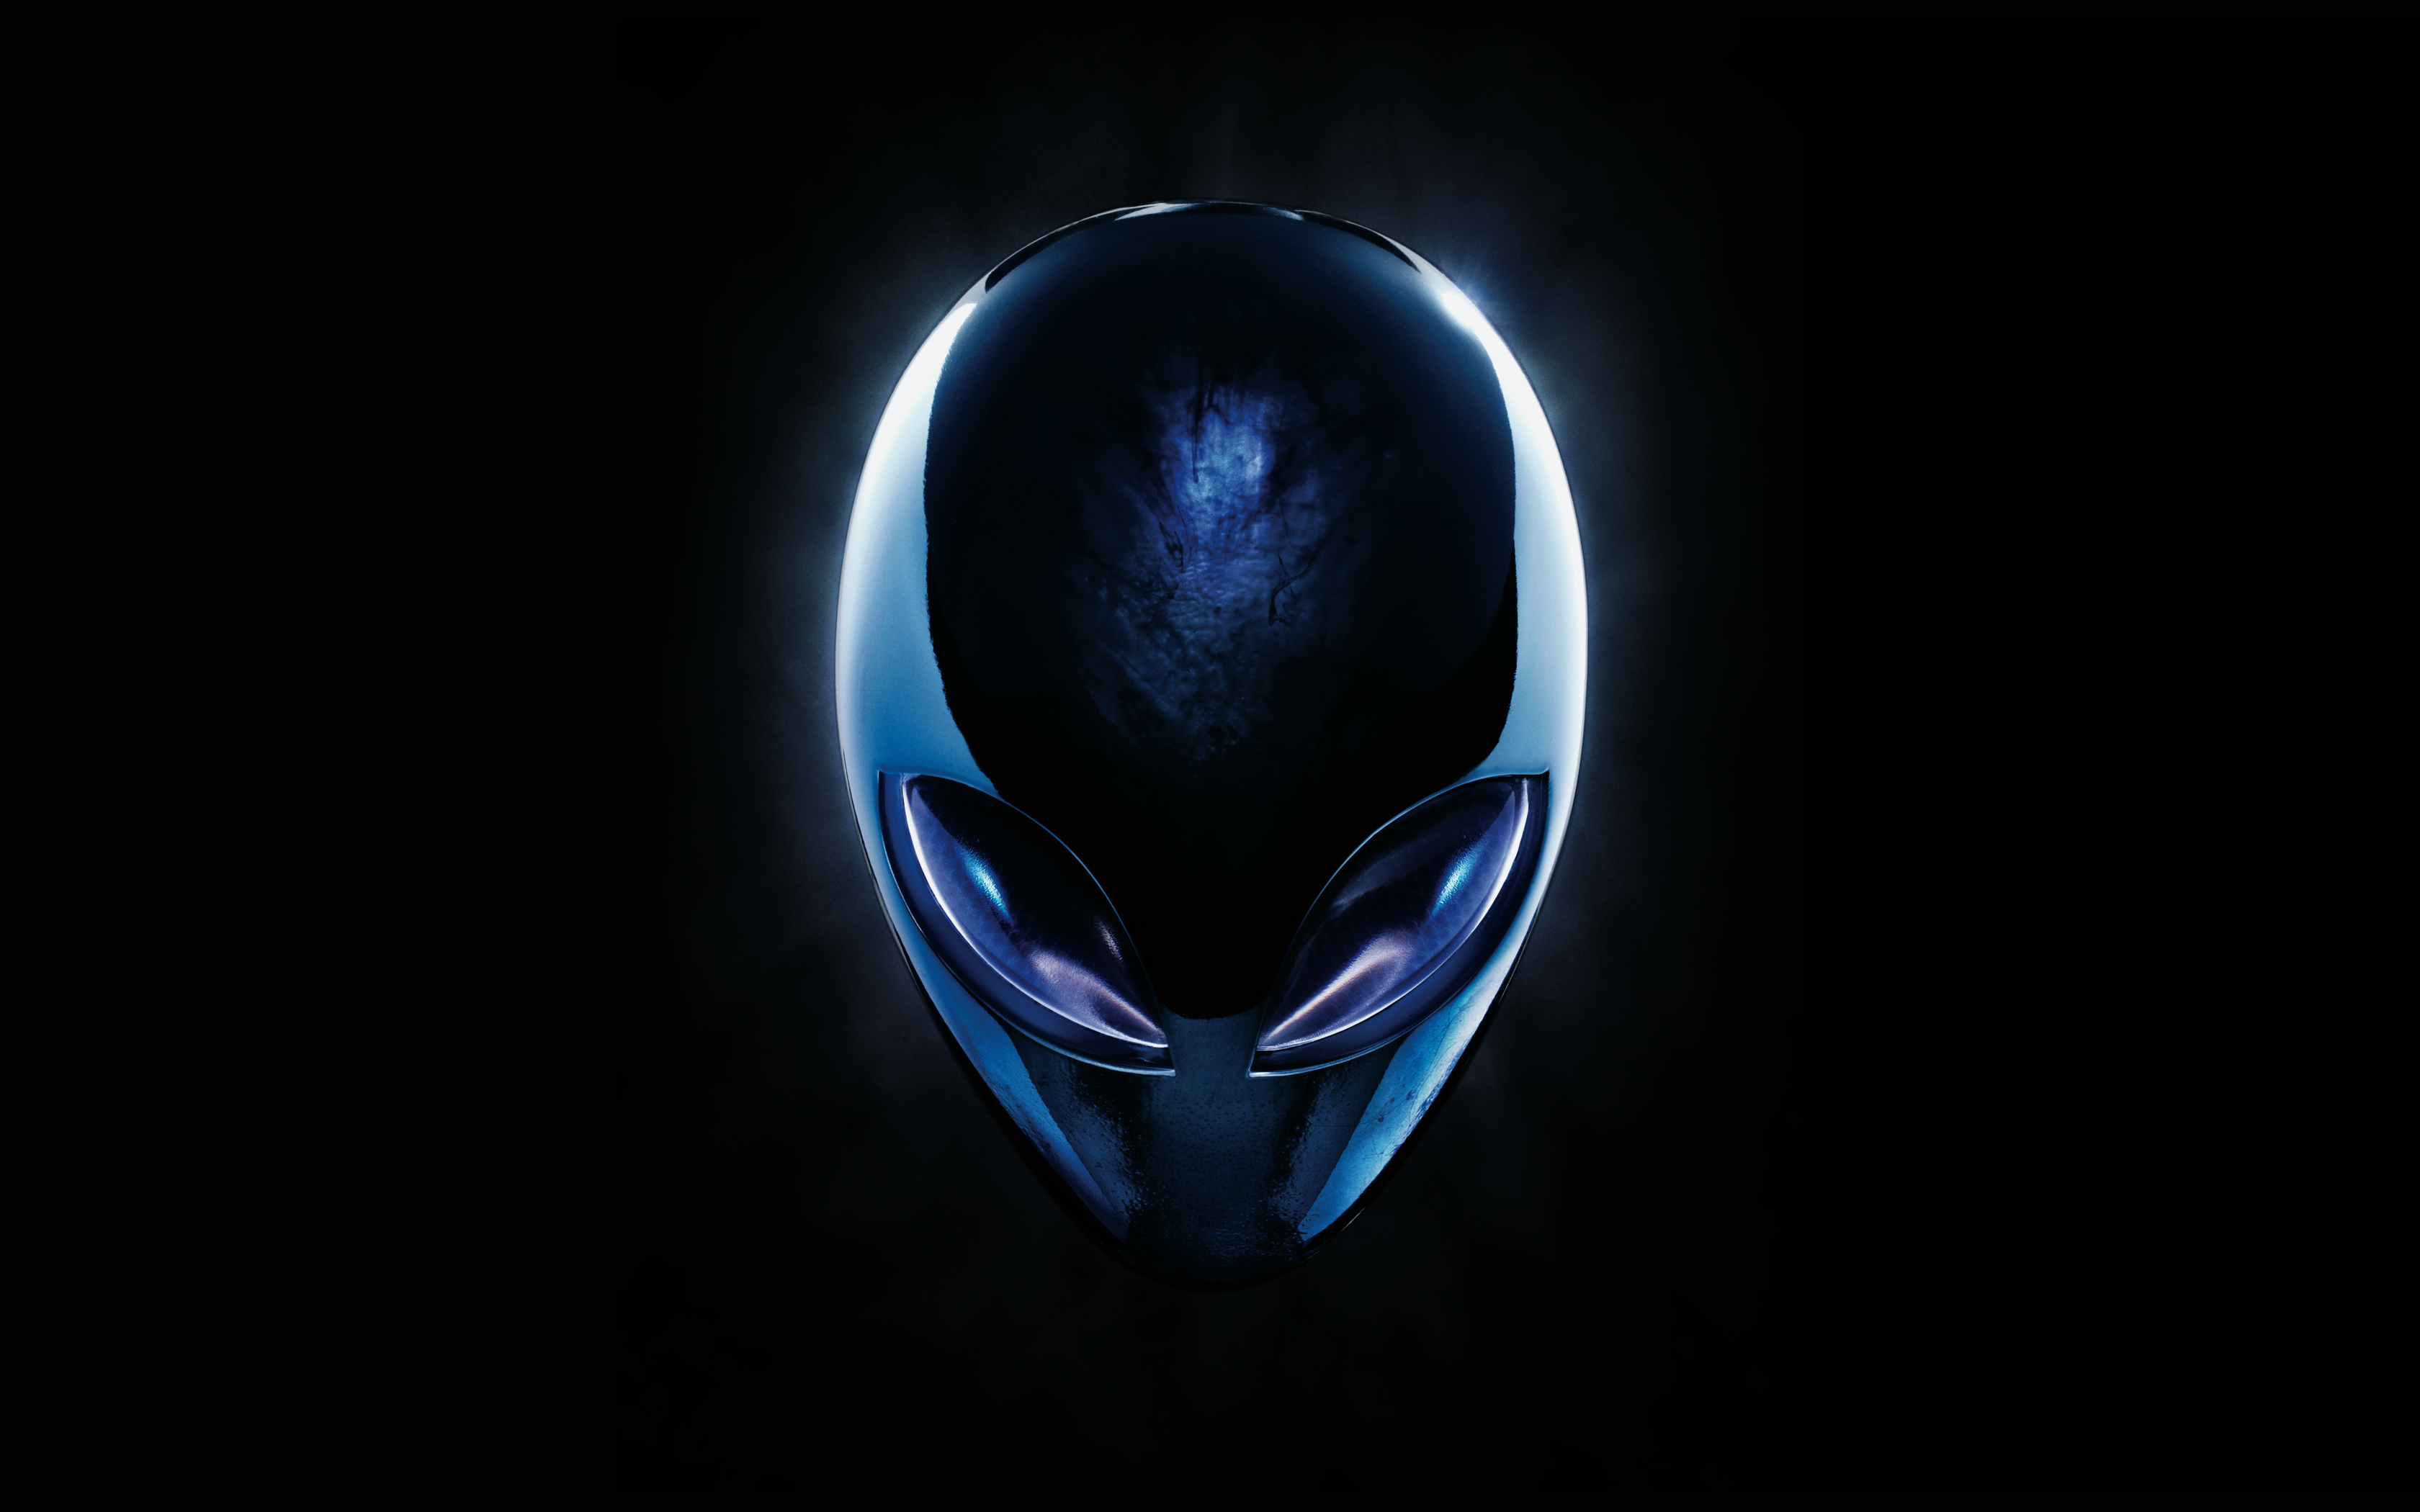 Alienware Wallpaper HD Wallpaper of Logo   hdwallpaper2013com 3360x2100